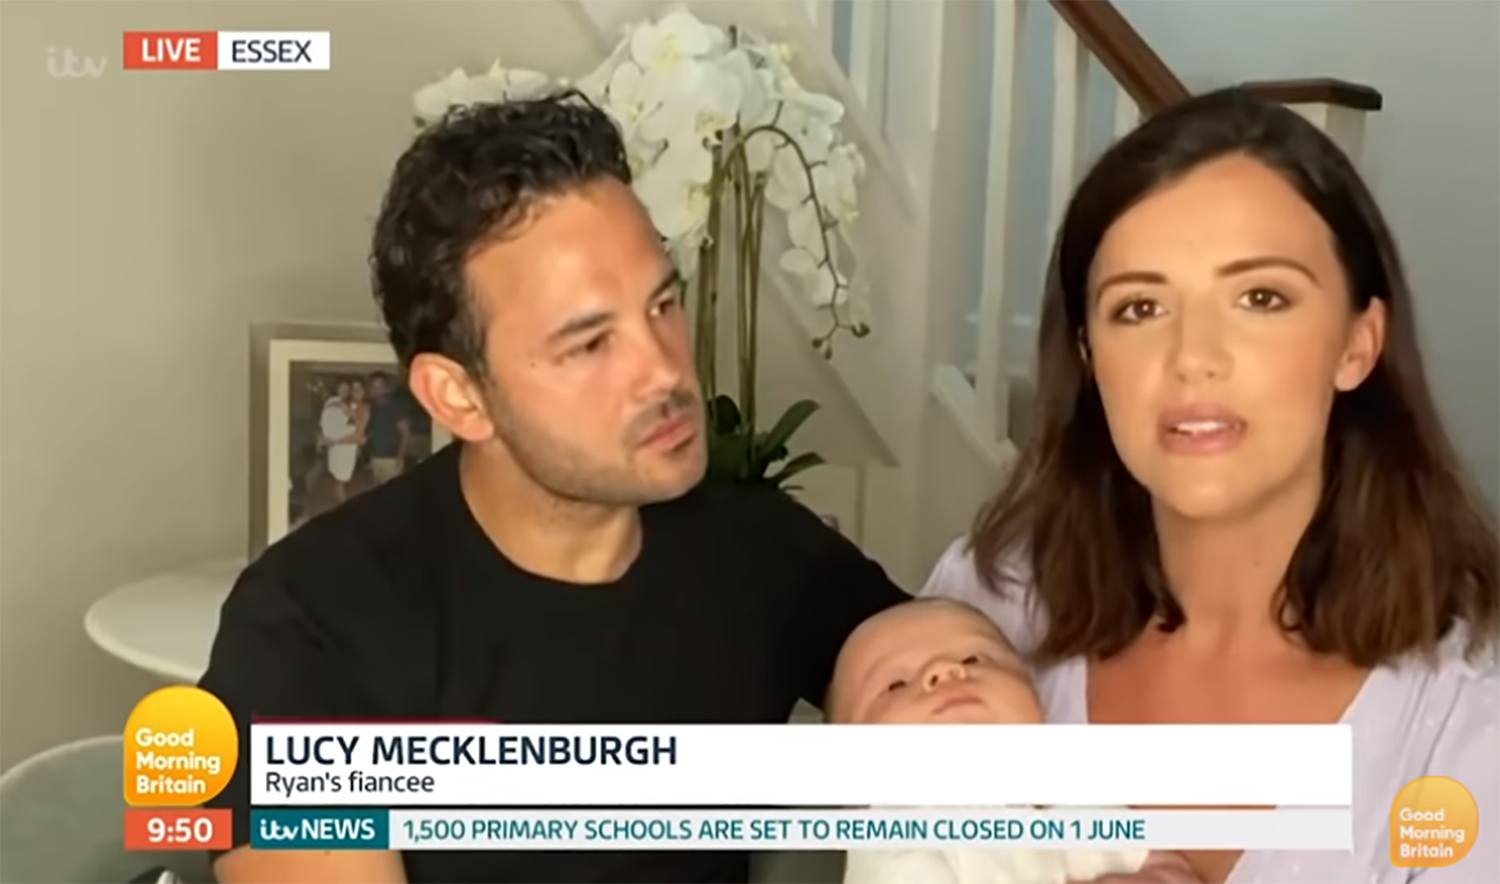 Lucy Mecklenburgh on GMB